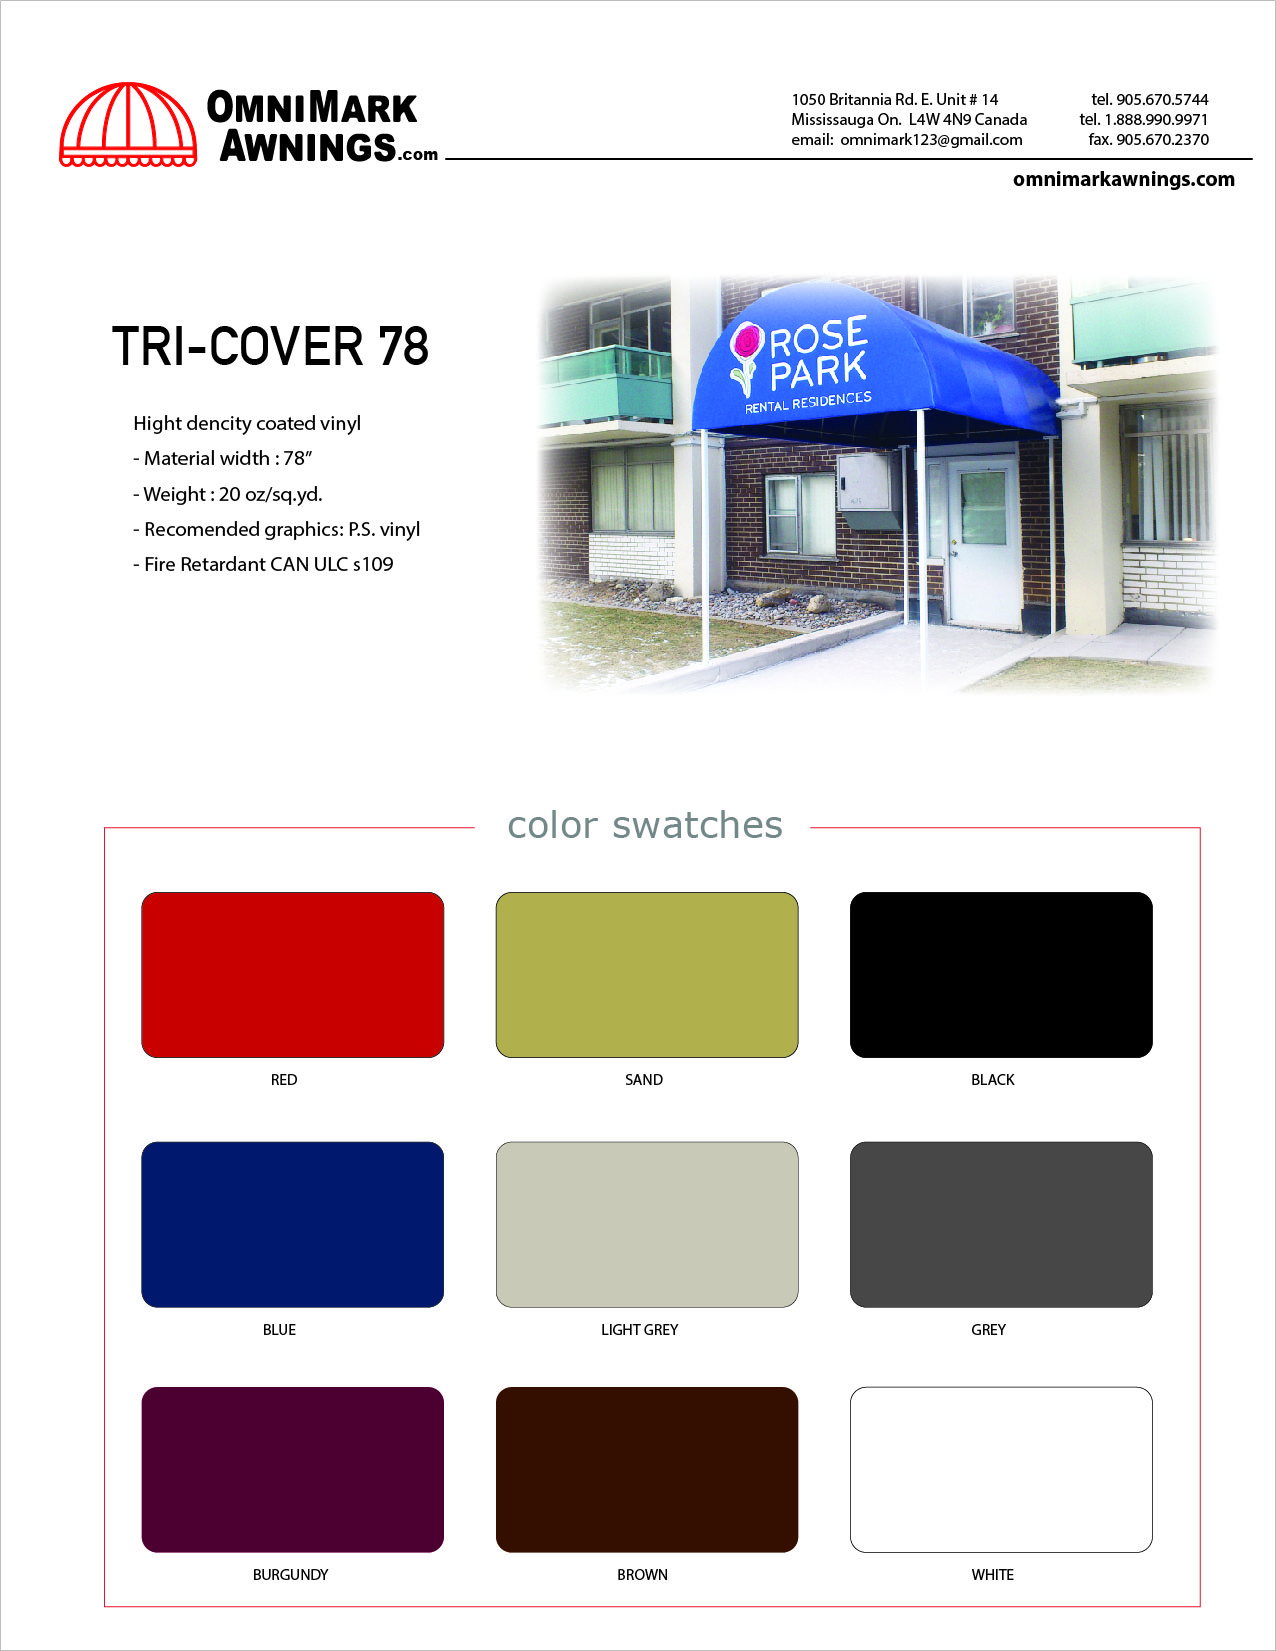 TriCover